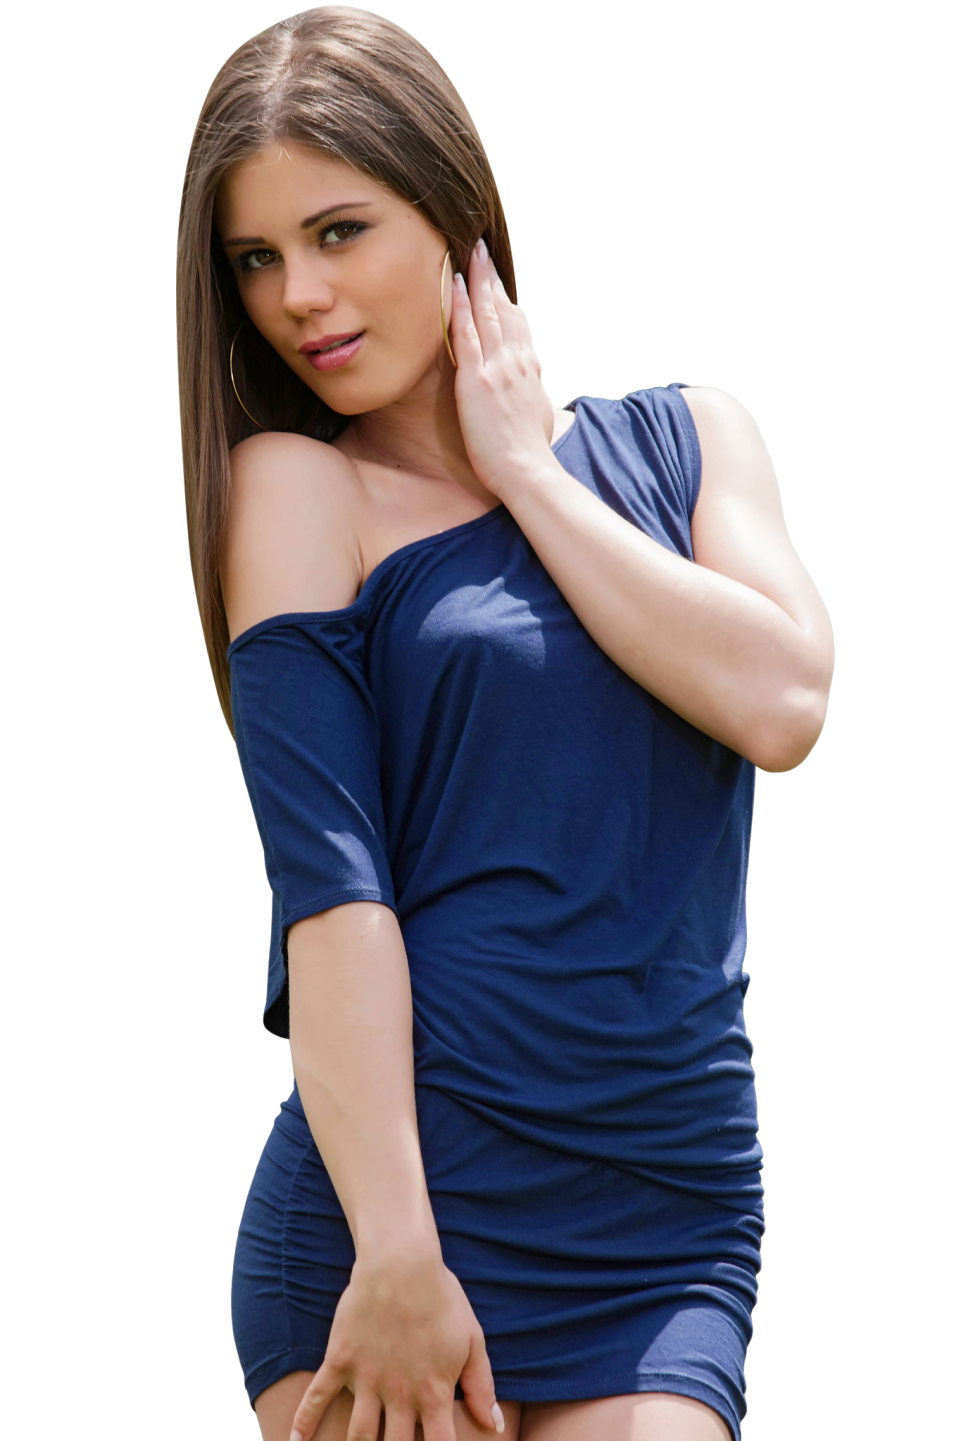 Posing Little Caprice in Blue Dress PNG Image